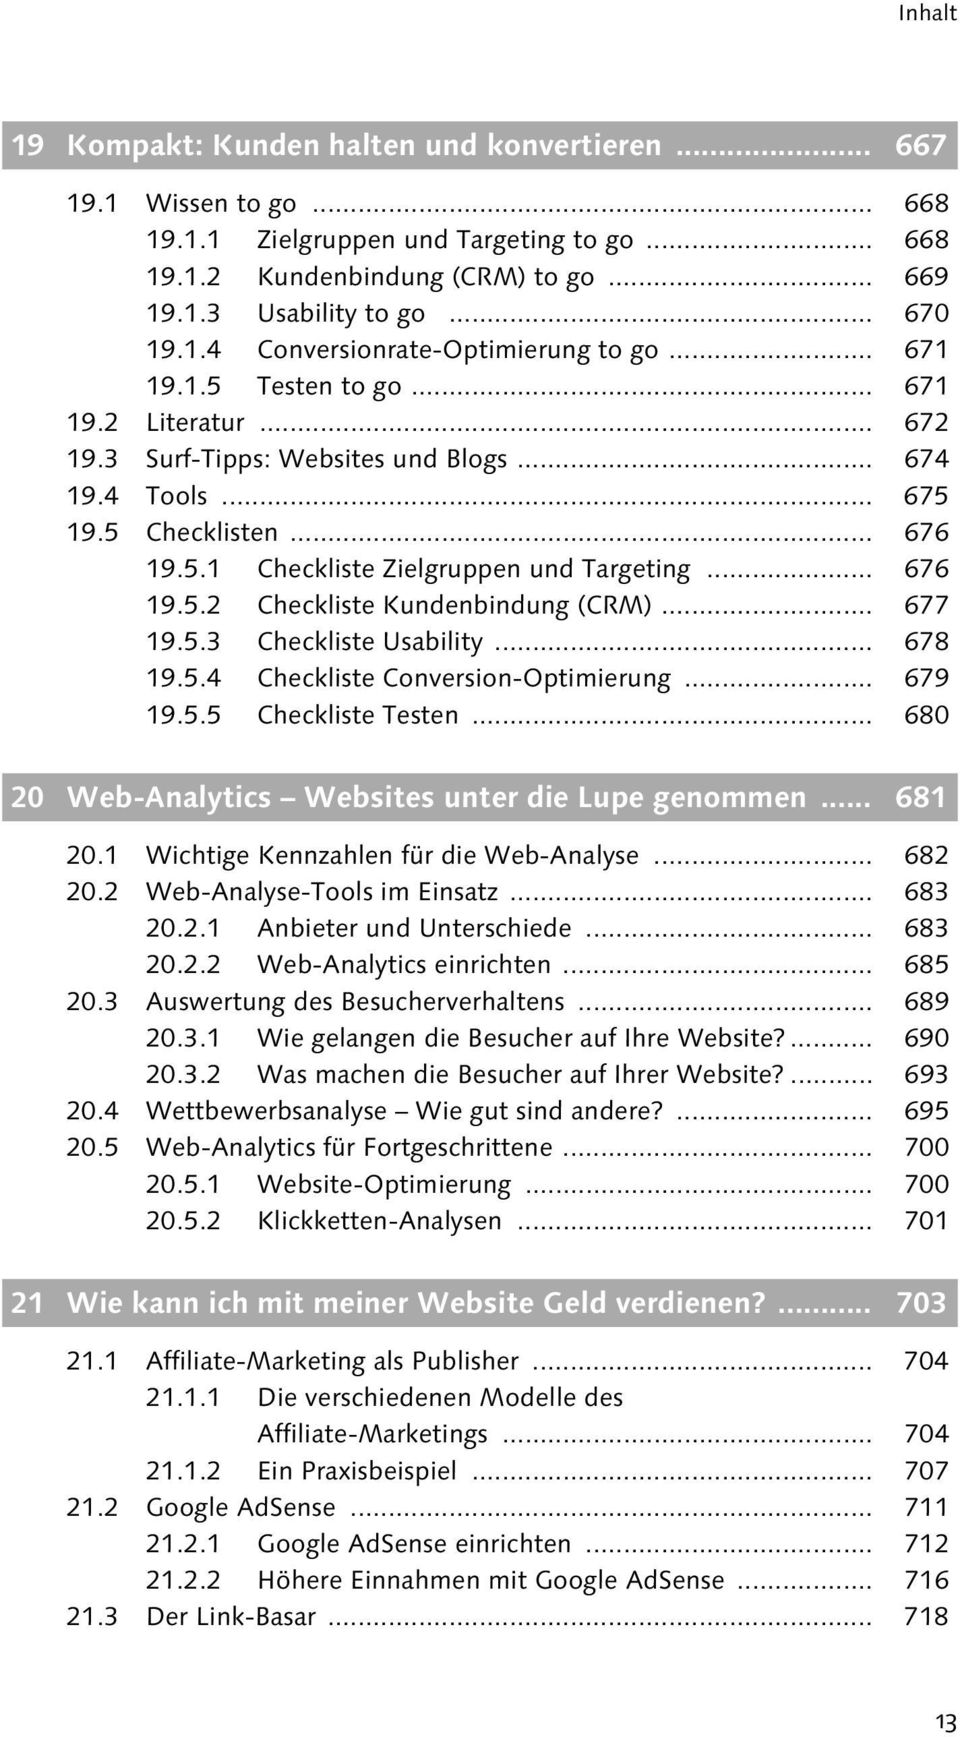 .. 676 19.5.2 Checkliste Kundenbindung (CRM)... 677 19.5.3 Checkliste Usability... 678 19.5.4 Checkliste Conversion-Optimierung... 679 19.5.5 Checkliste Testen.